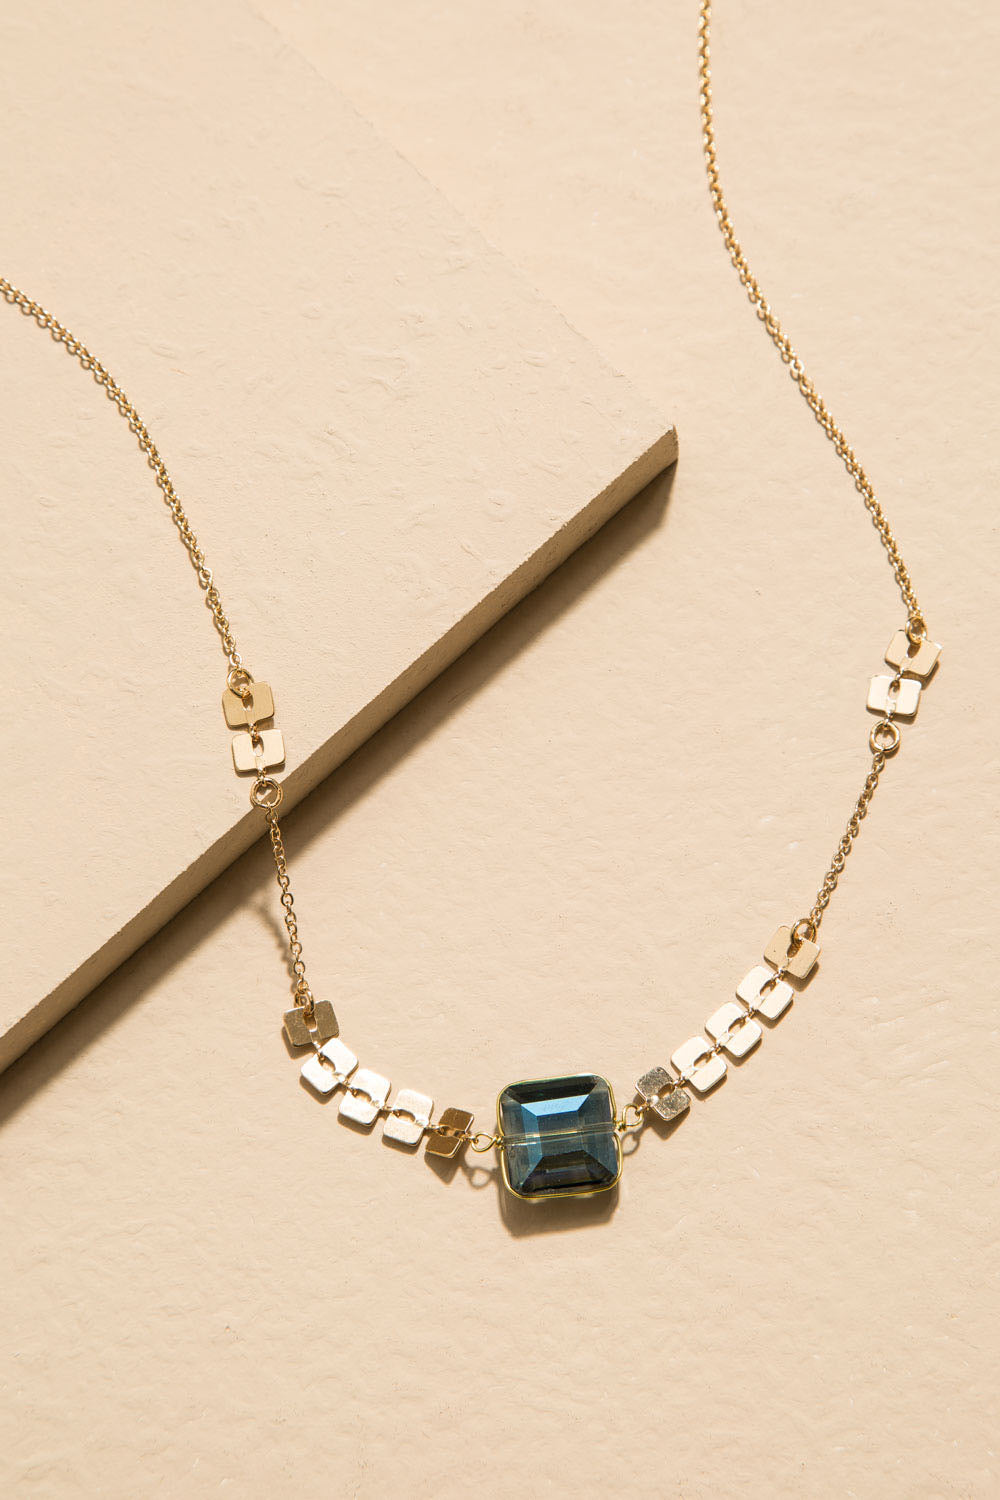 Type 3 Mountain View Jewel Necklace